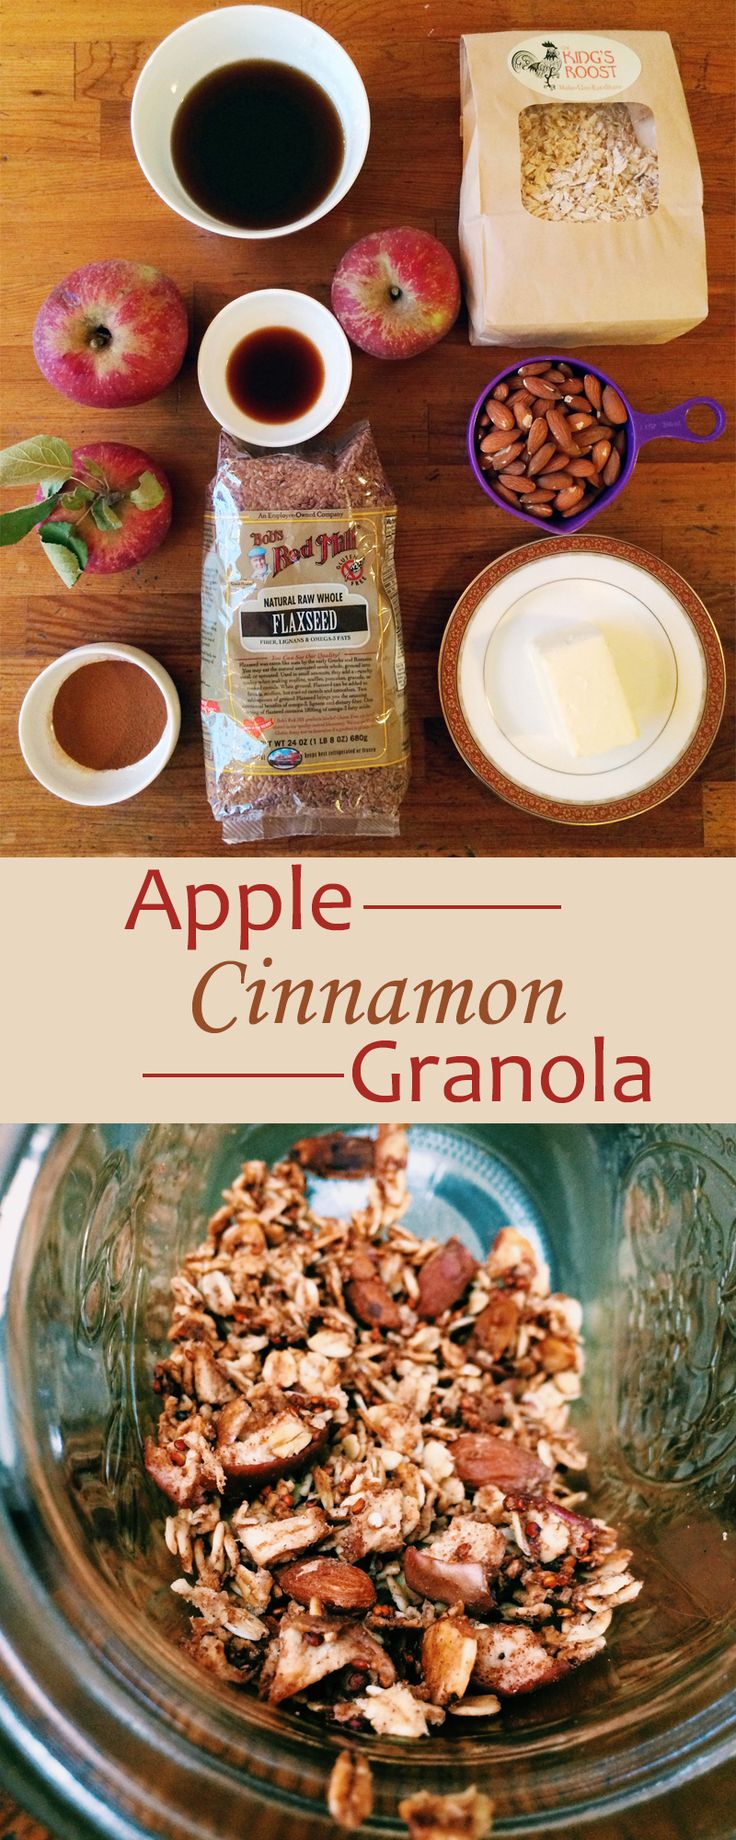 Apple Cinnamon Granola -- Apples and cinnamon are classic fall flavors. They both come together to create this healthy granola recipe that's crunchy, sweet, and perfectly spiced. // fall recipes // healthy fall recipes // easy recipes // breakfasts // snacks // beachbody // beachbody blog